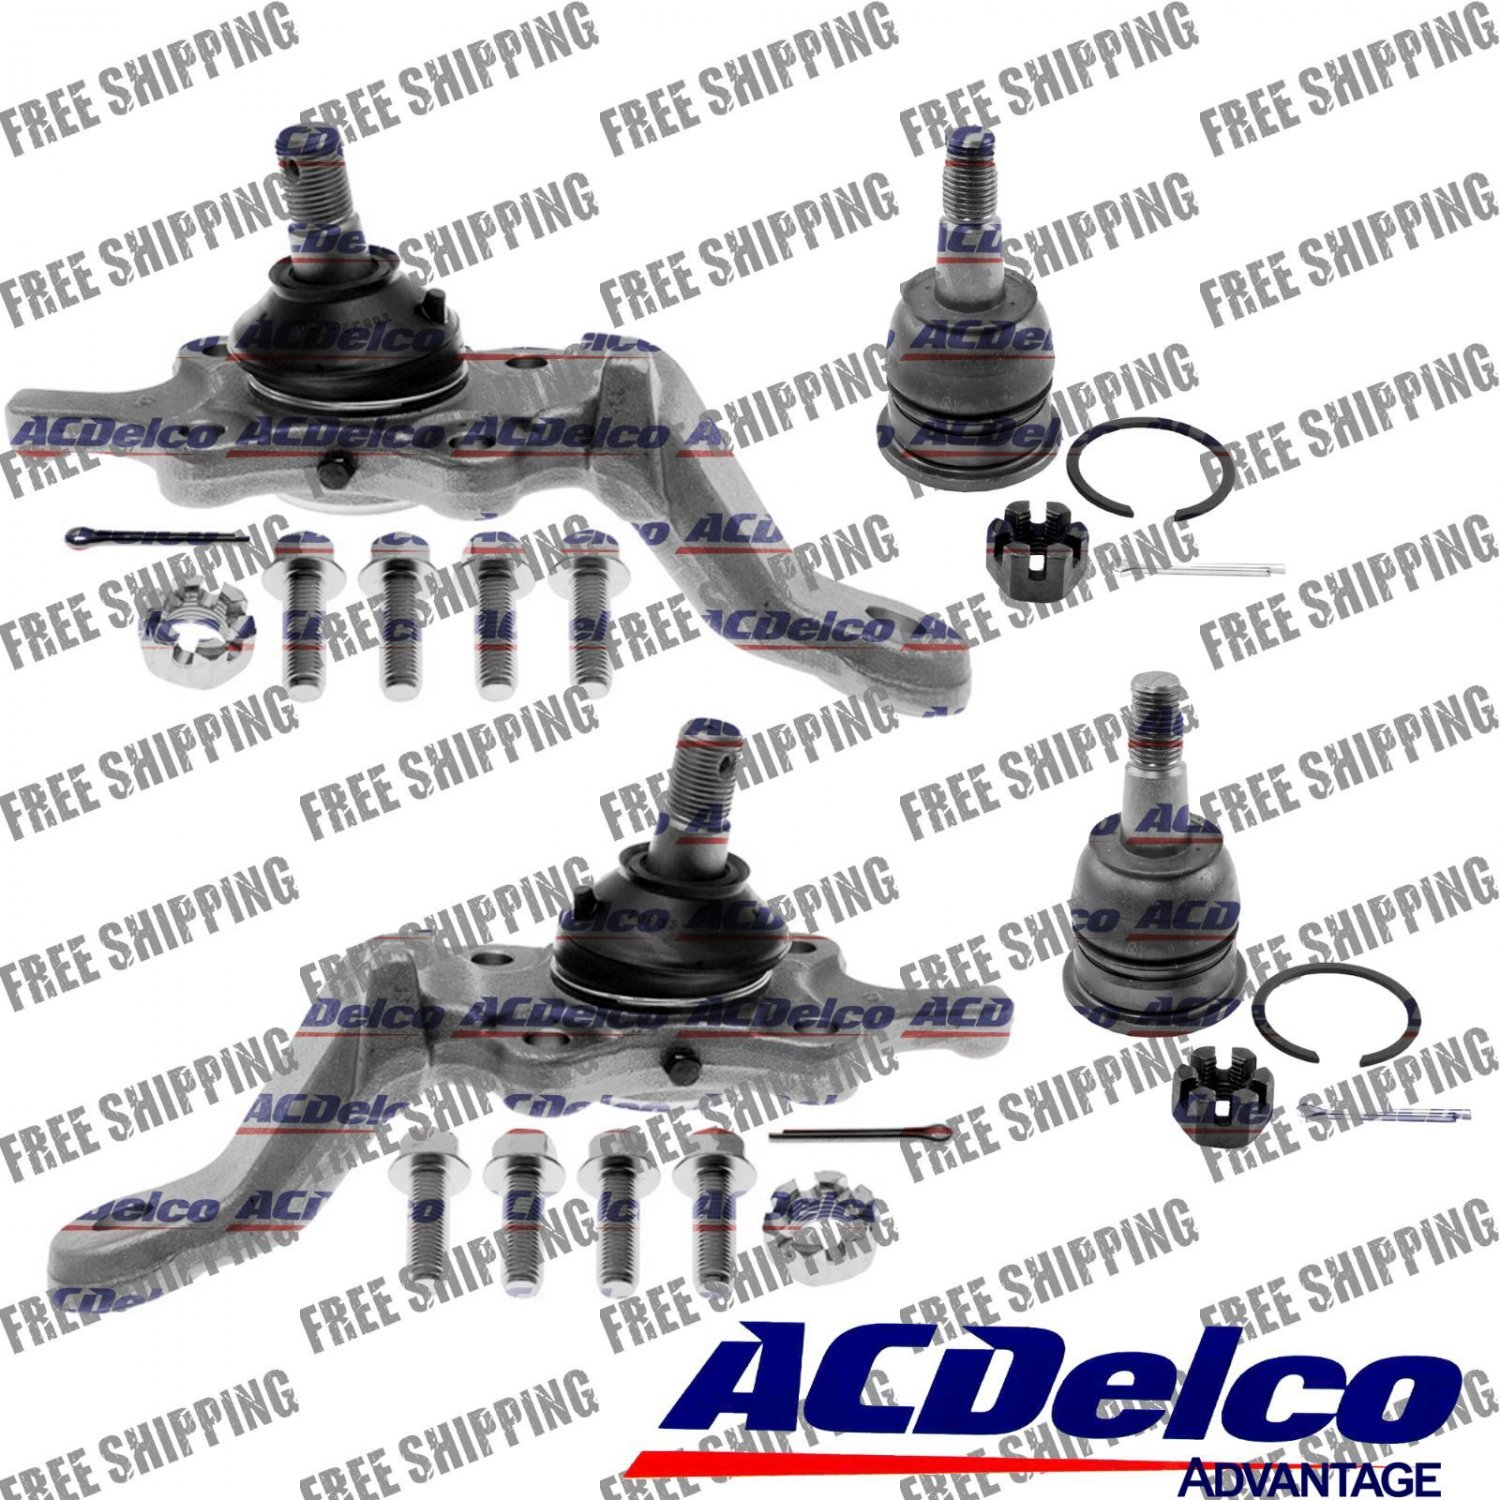 1996 to 2002 Toyota 4Runner-Sequoia-Tundra Front Suspension Ball Joints Set Kit